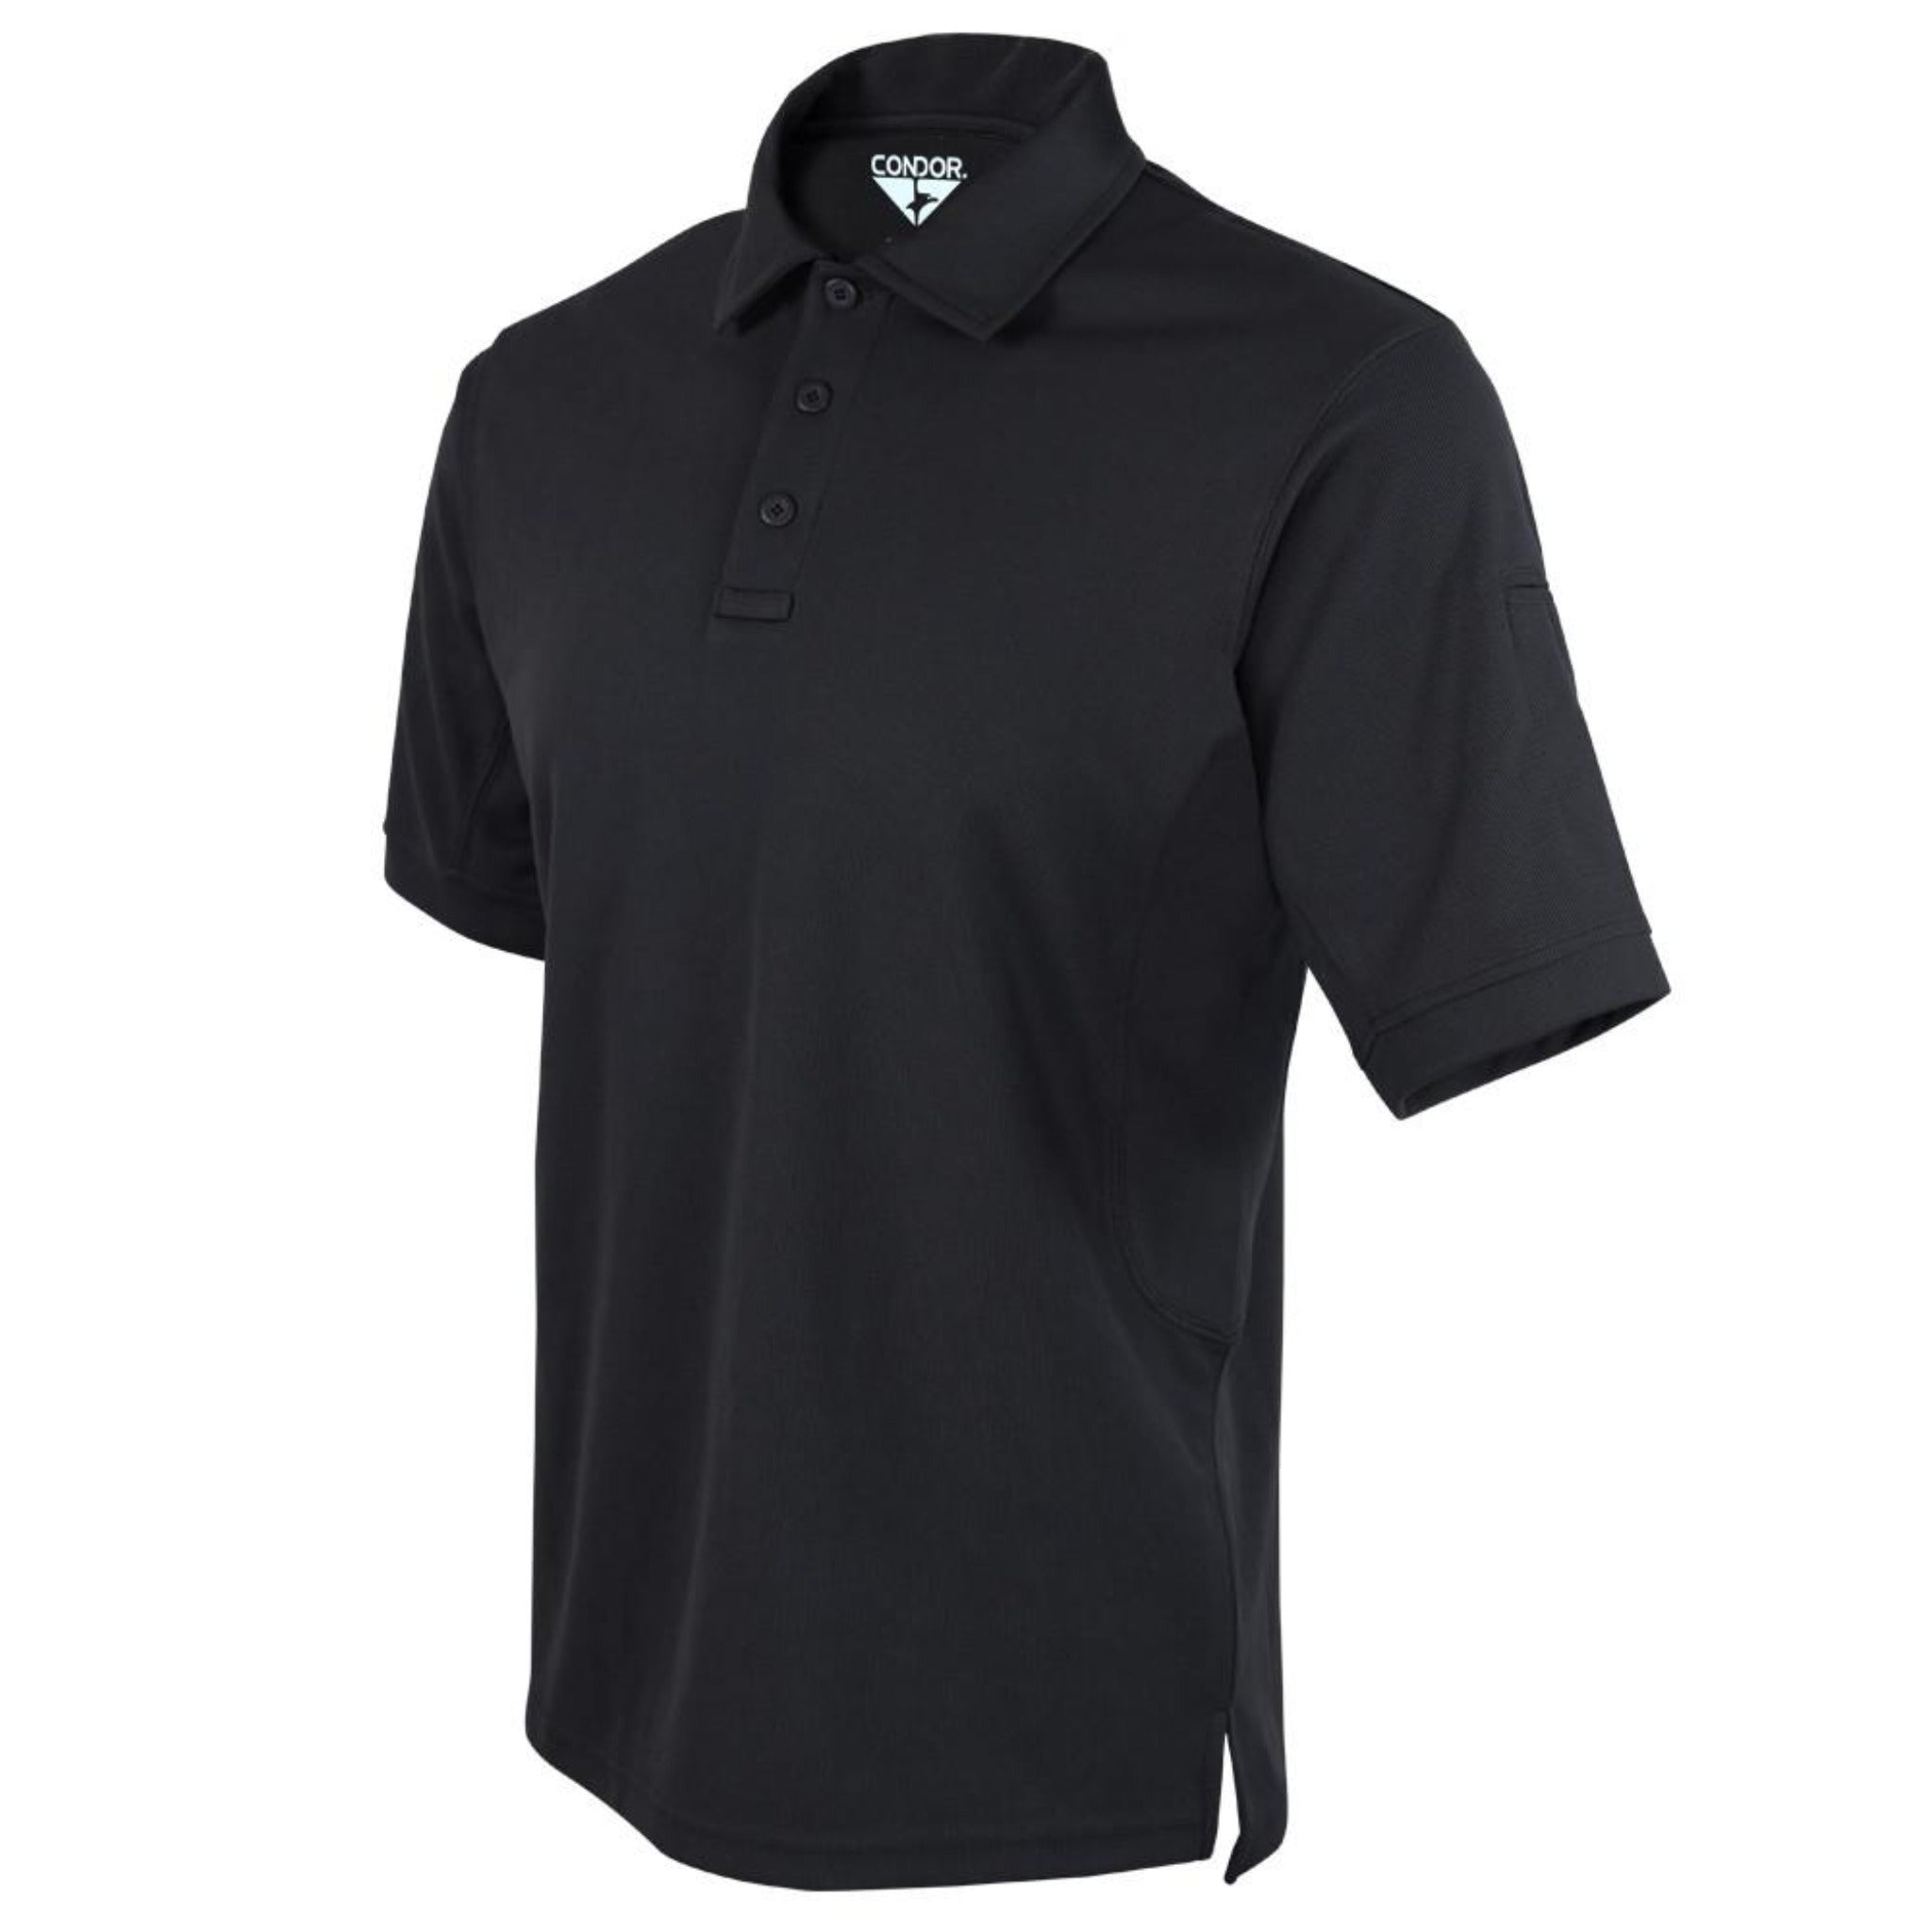 Performance Tactical Polo Shirt